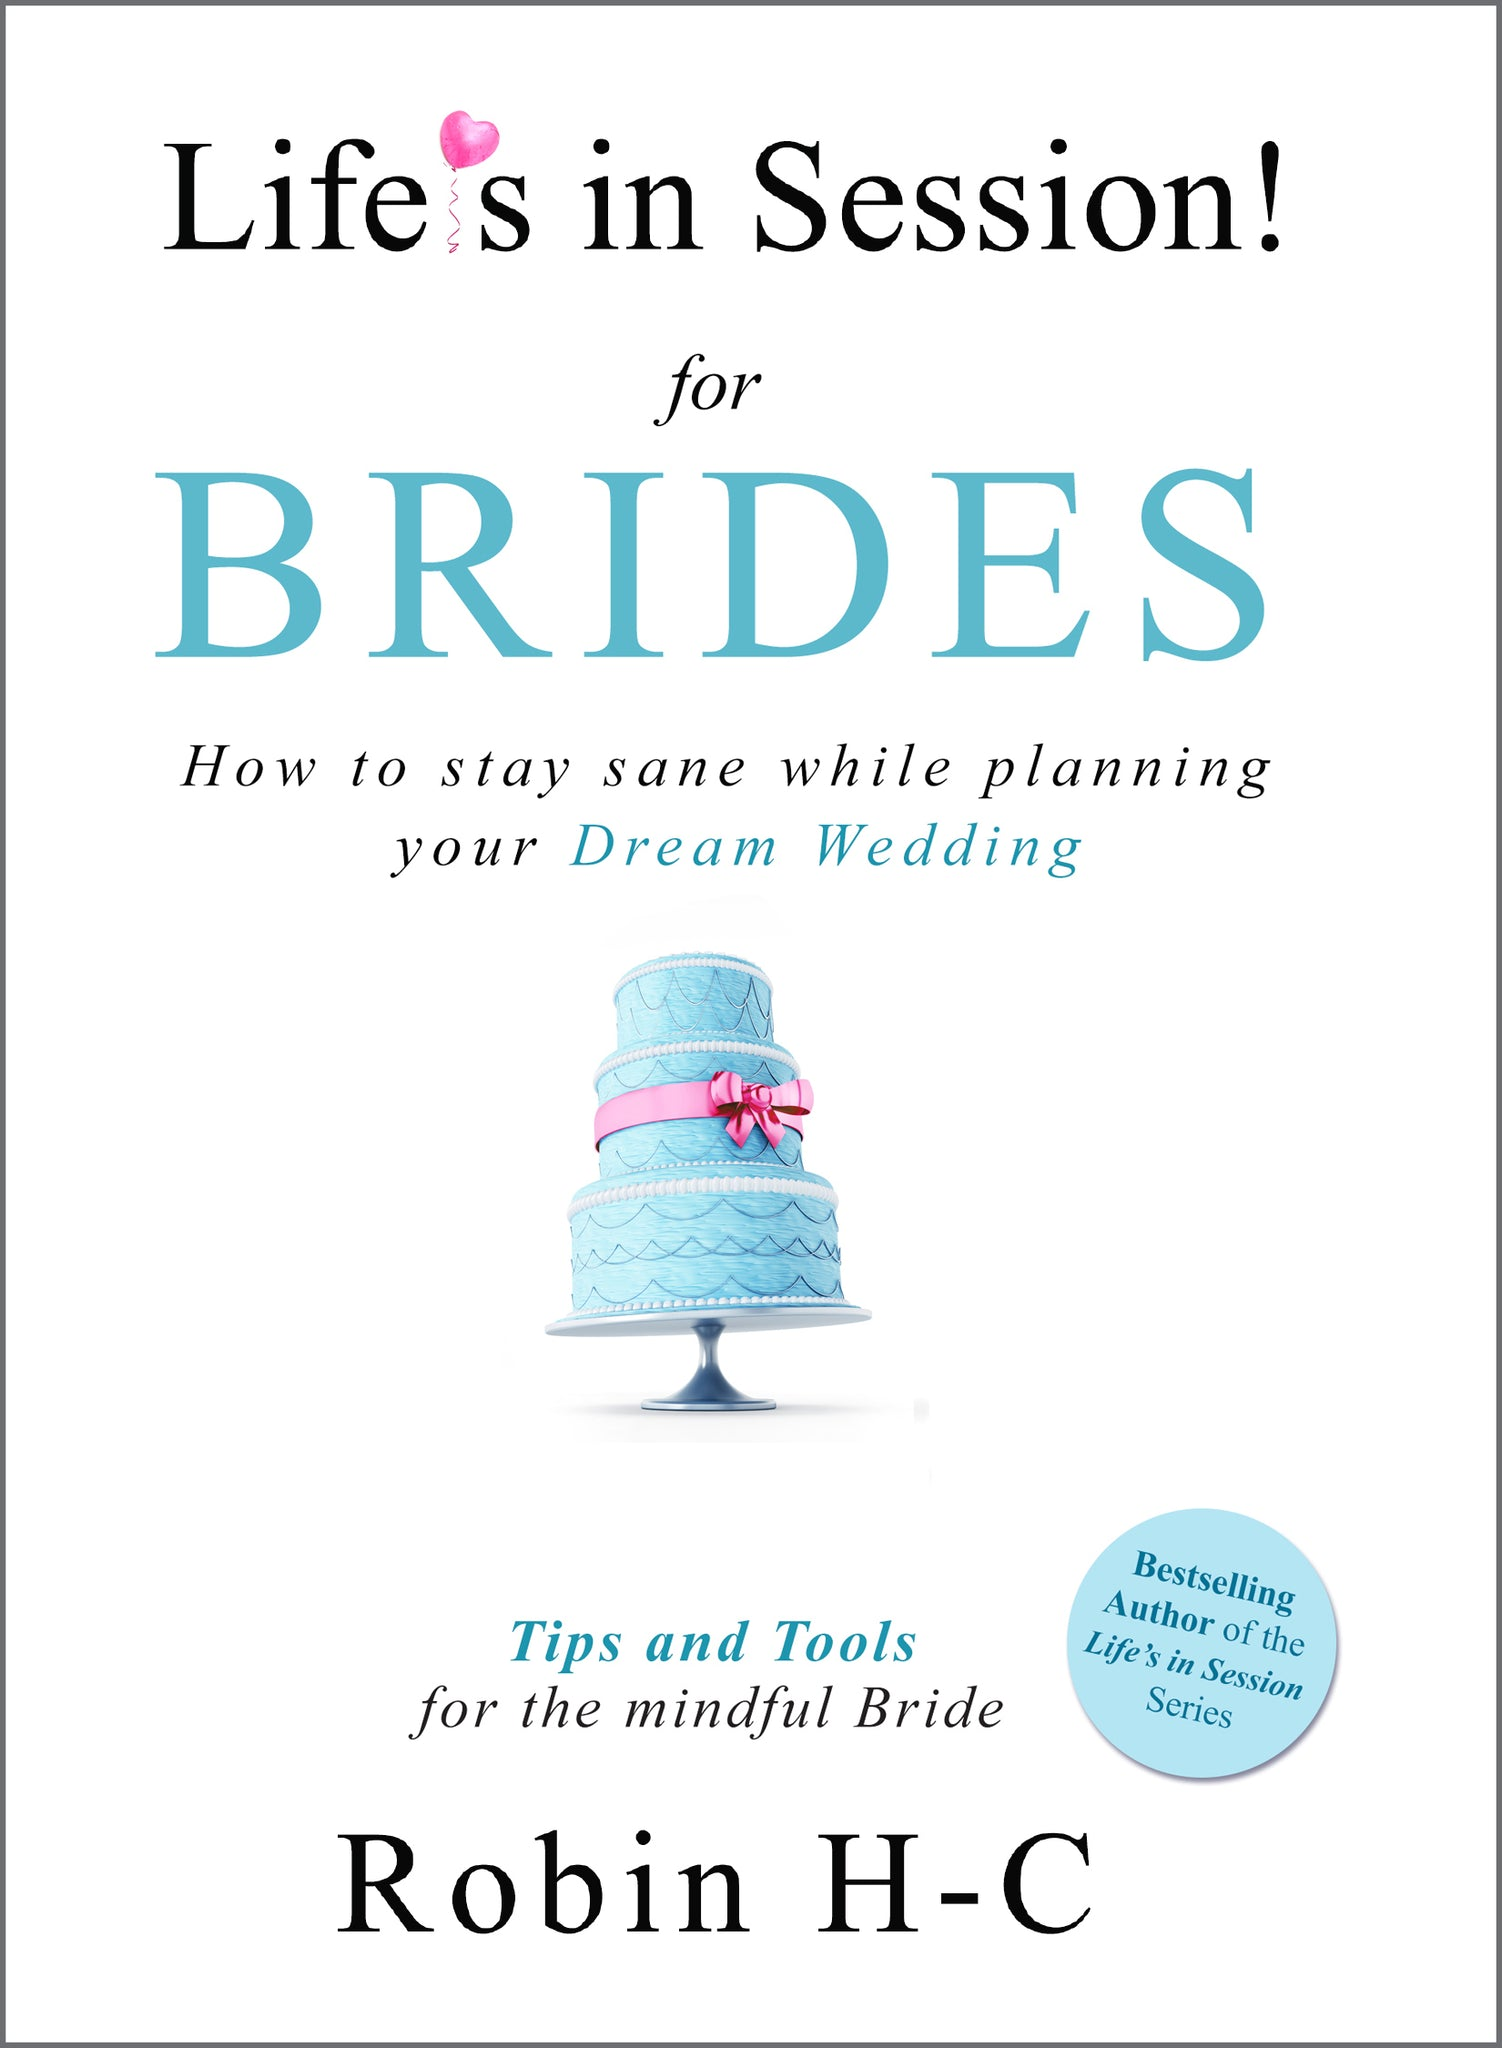 Life's in Session for Brides